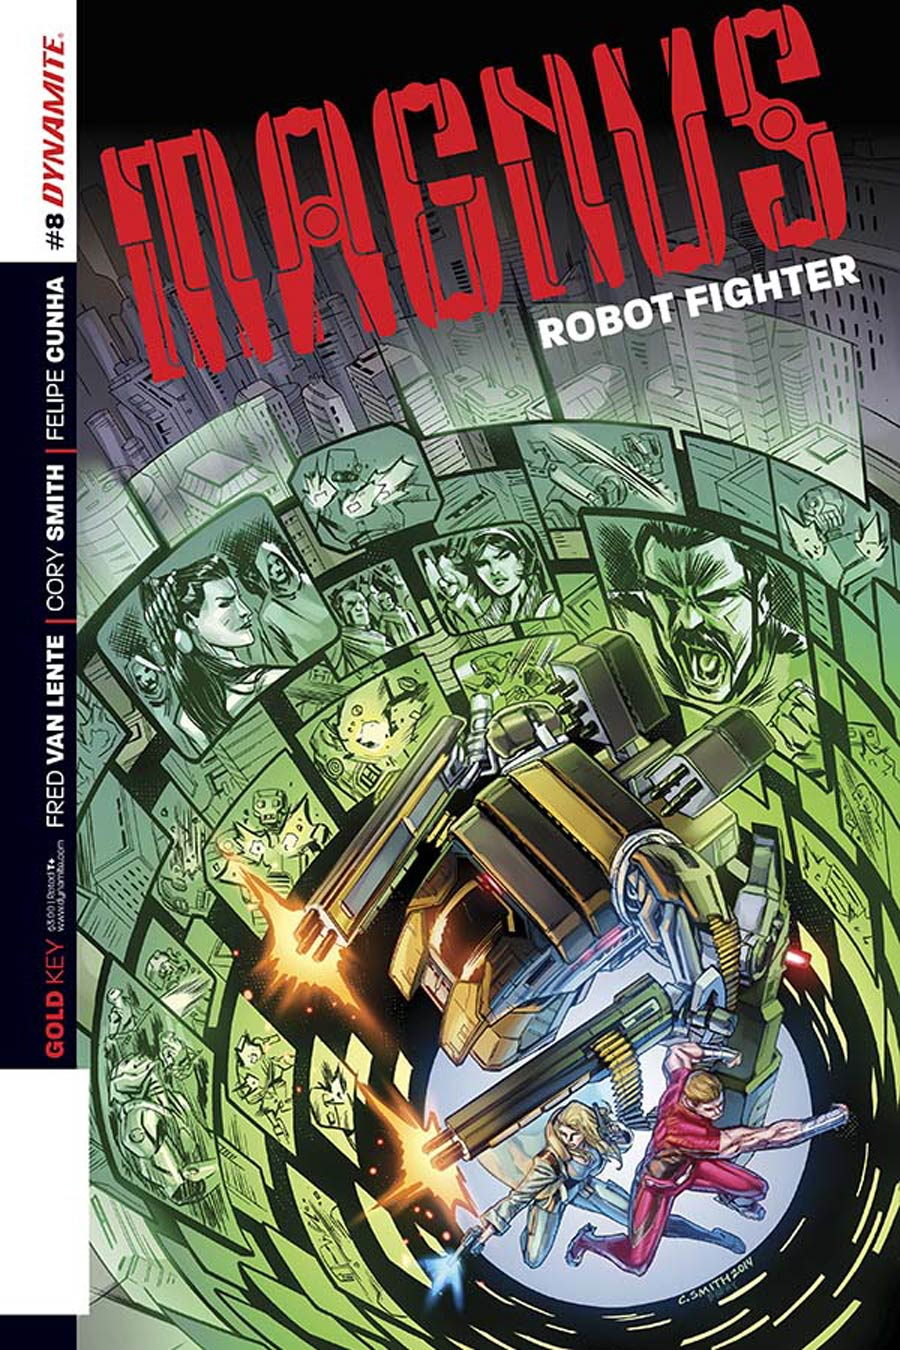 Magnus Robot Fighter Vol 4 #8 Cover B Variant Cory Smith Subscription Cover